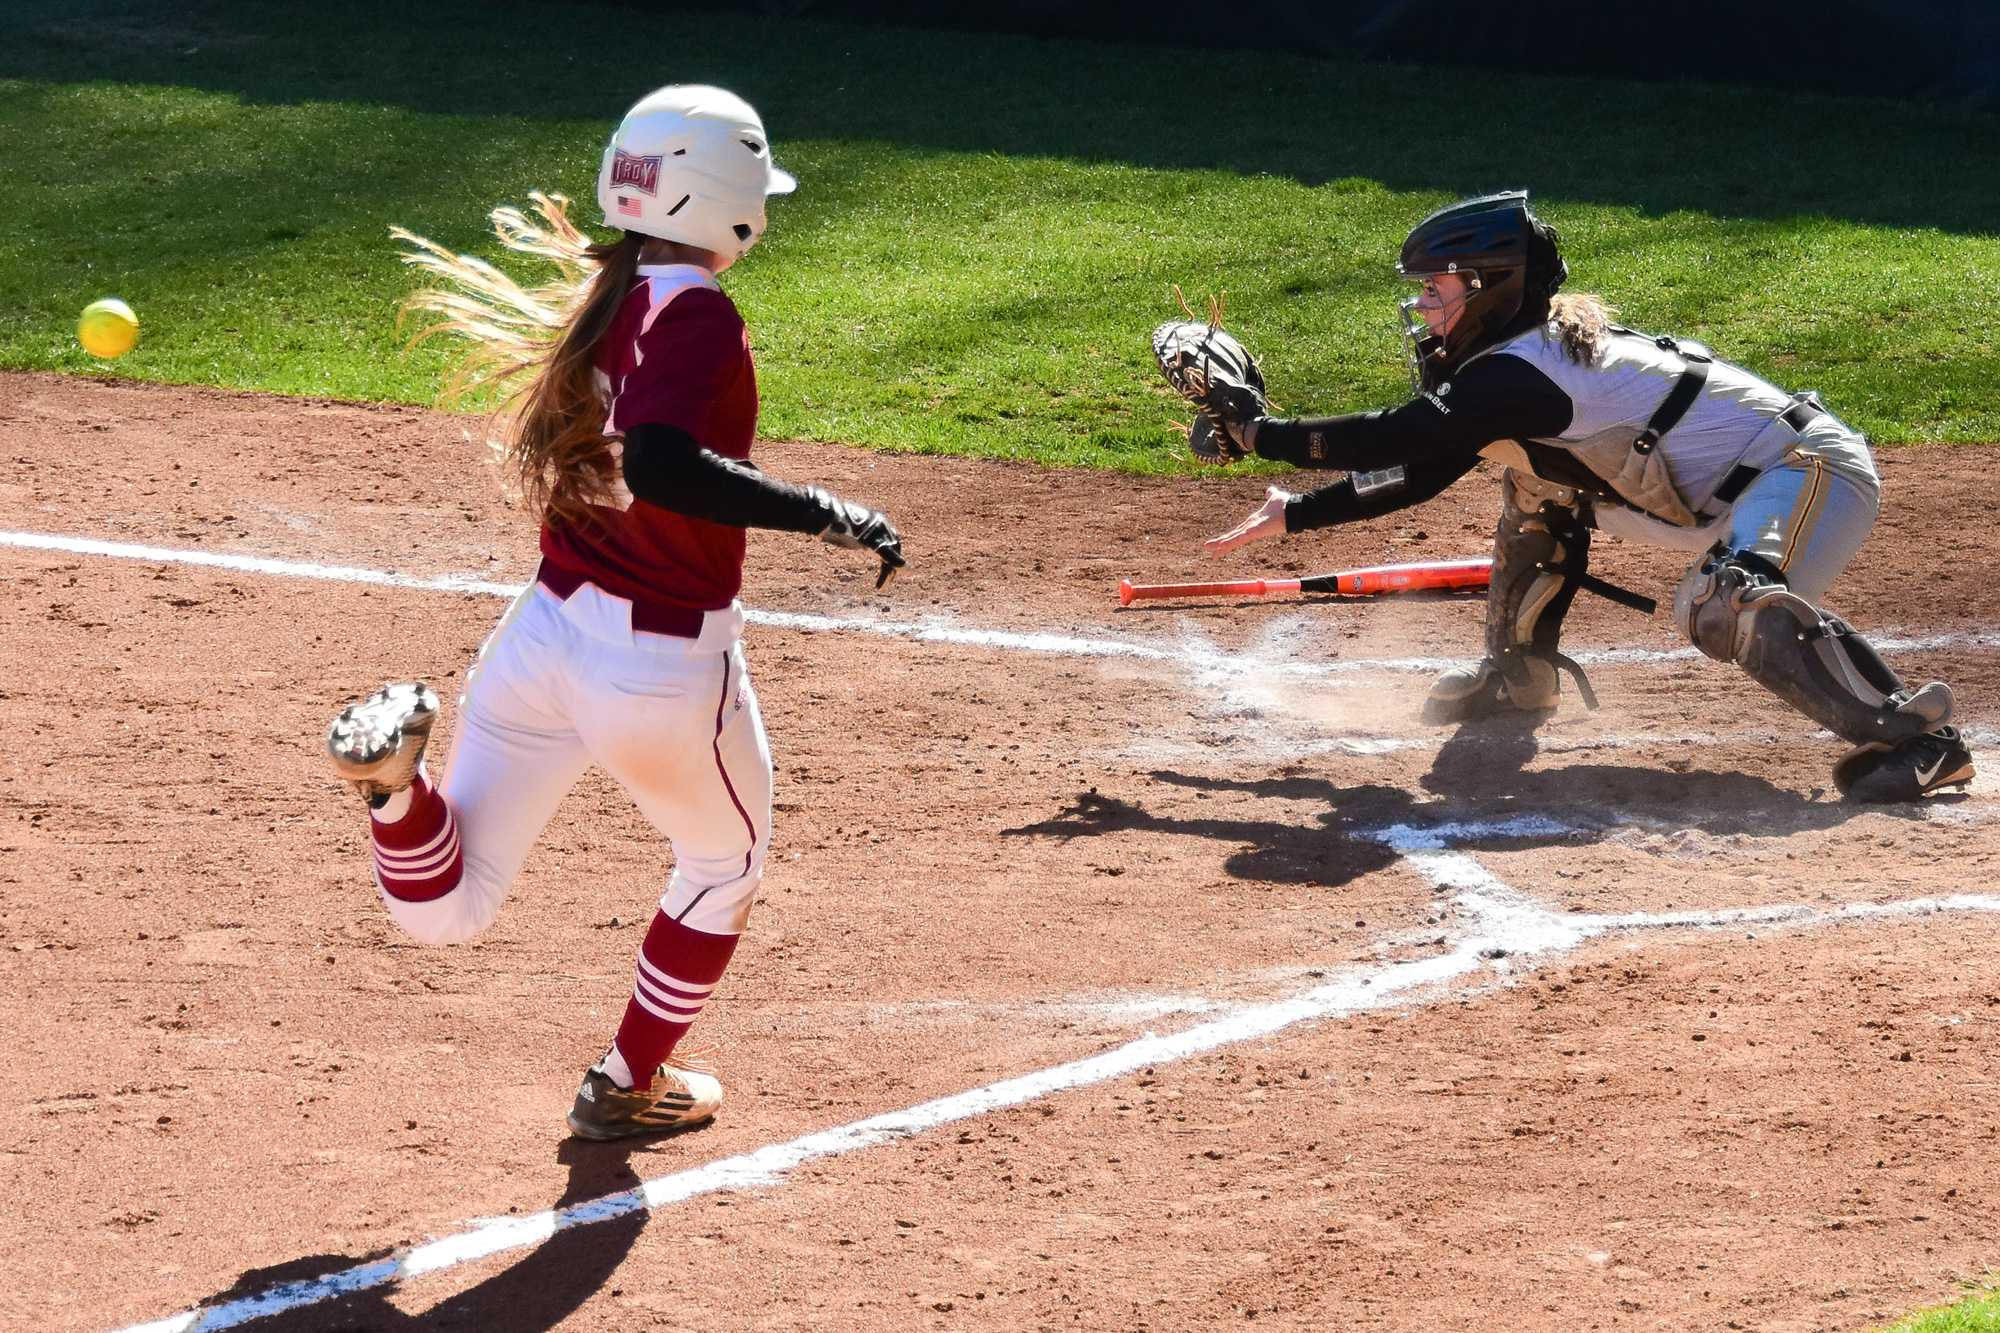 Freshman+catcher+Jenny+Dodd+prepares+for+a+play+at+home+to+prevent+a+run+by+Troy+on+March+18.